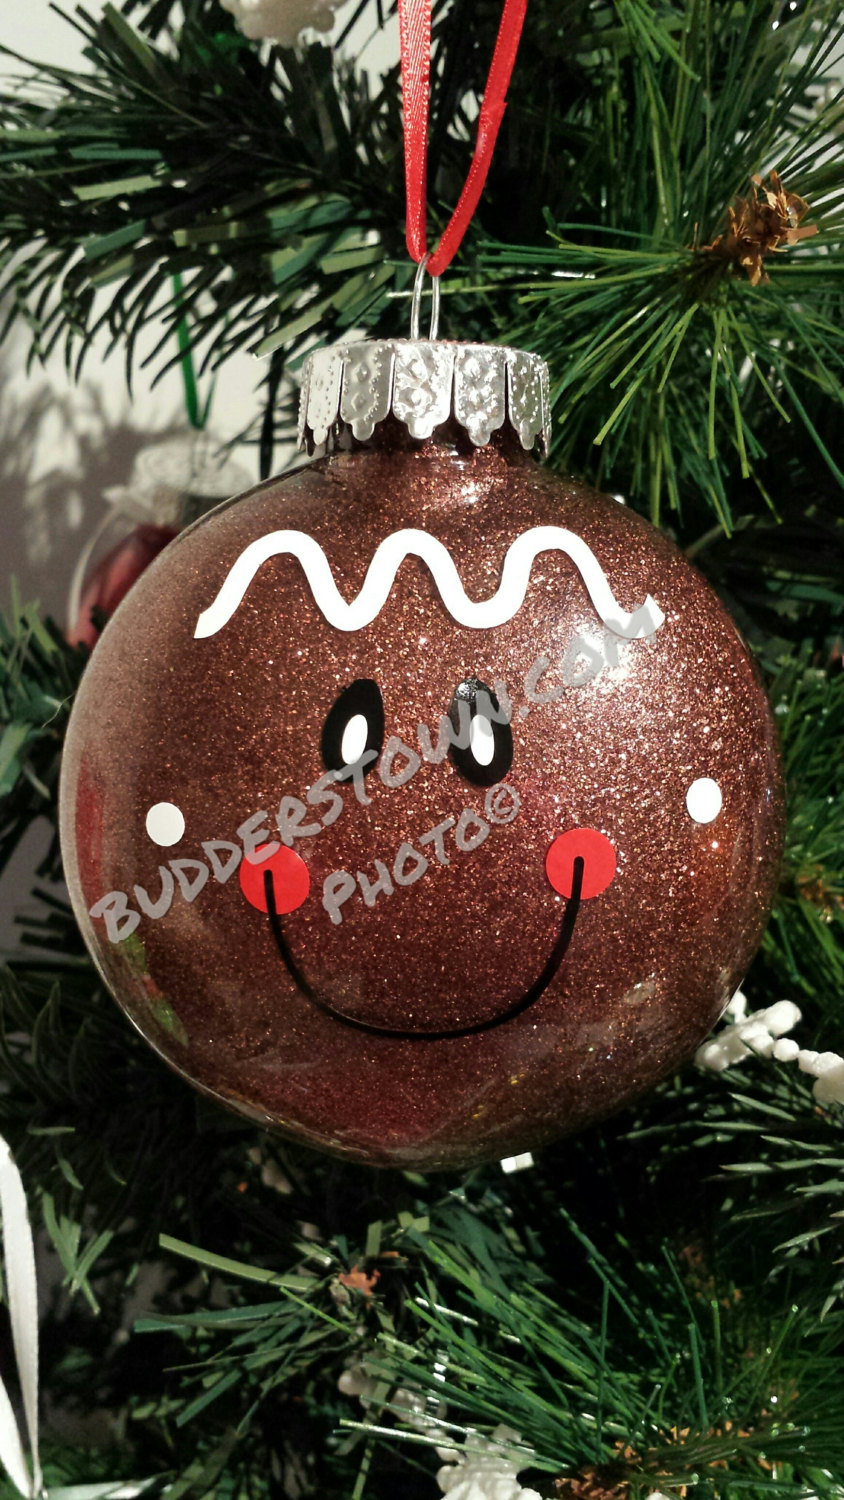 Gingerbread Boy Personalized Glitter Christmas Ornaments Free Shipping Diy Christmas Ornaments Christmas Crafts Diy Christmas Ornaments